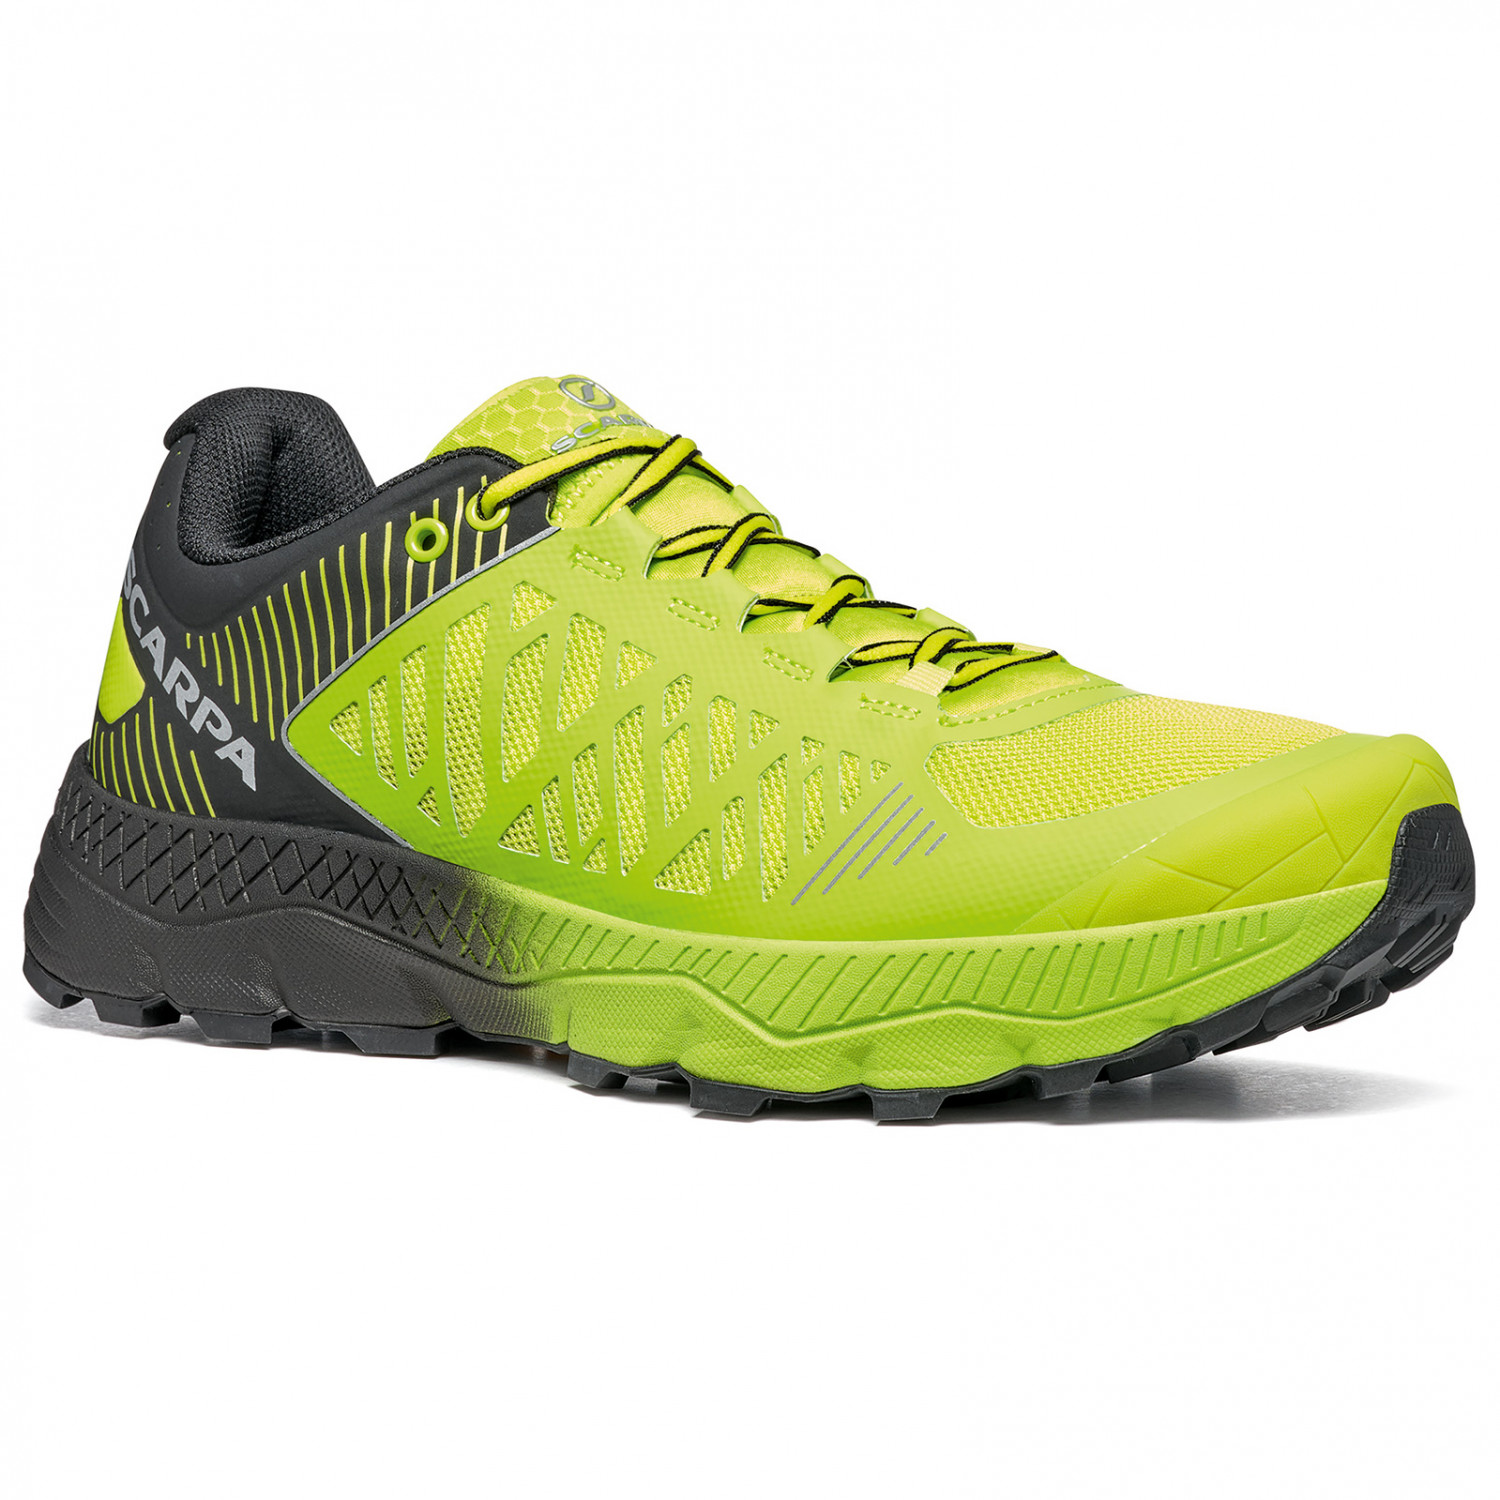 Scarpa Spin Ultra Scarpe per trail running Acid Lime Black | 41,5 (EU)